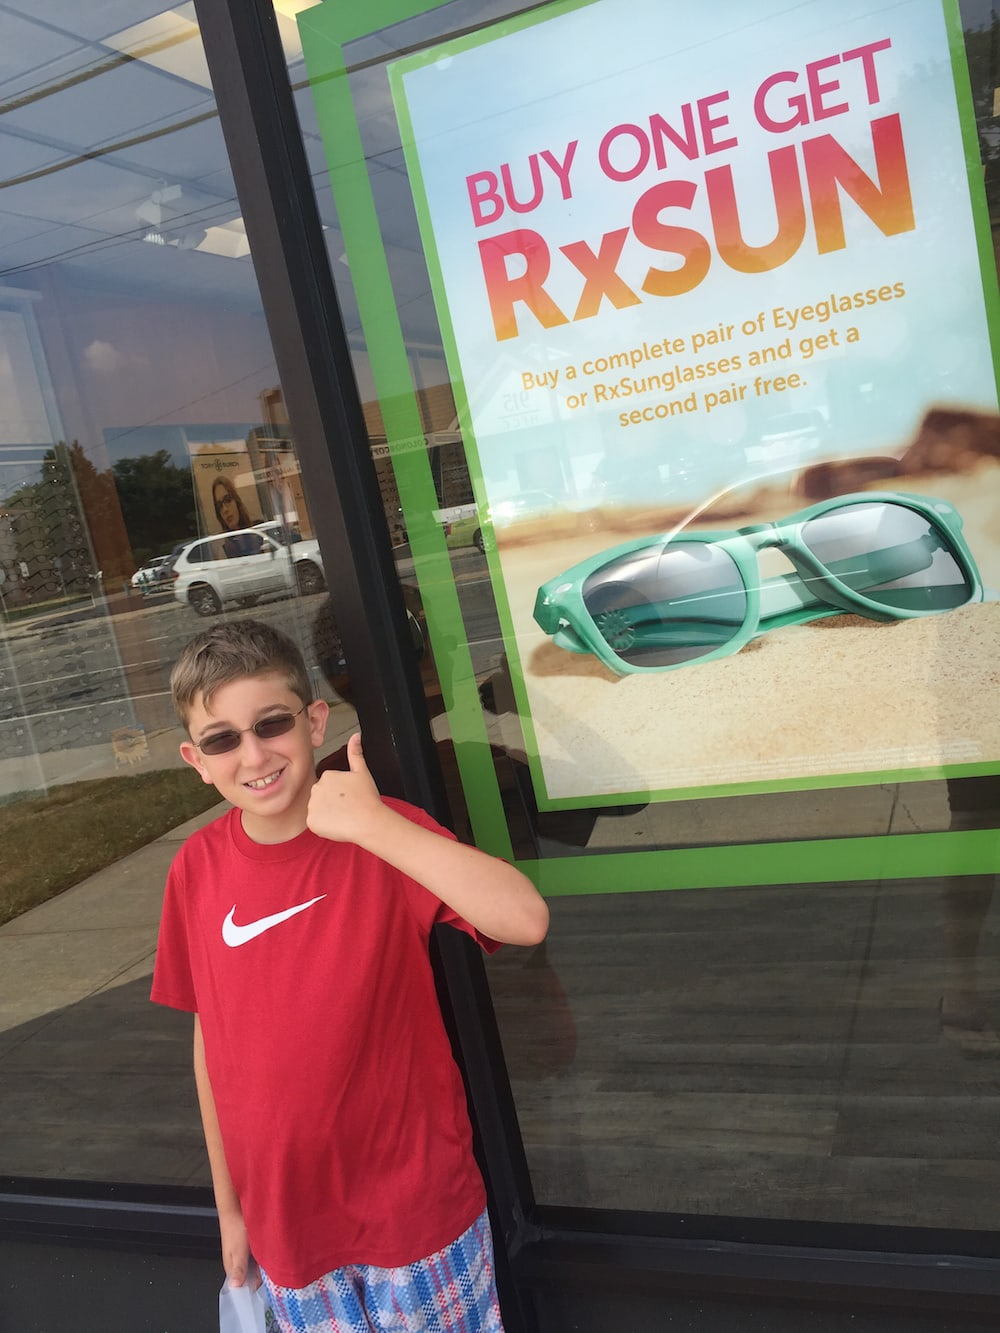 cbb502a1240 It s been a few weeks since Liam has been rocking his new glasses from Pearle  Vision and we couldn t be happier. We mentioned in our last post that we  opted ...